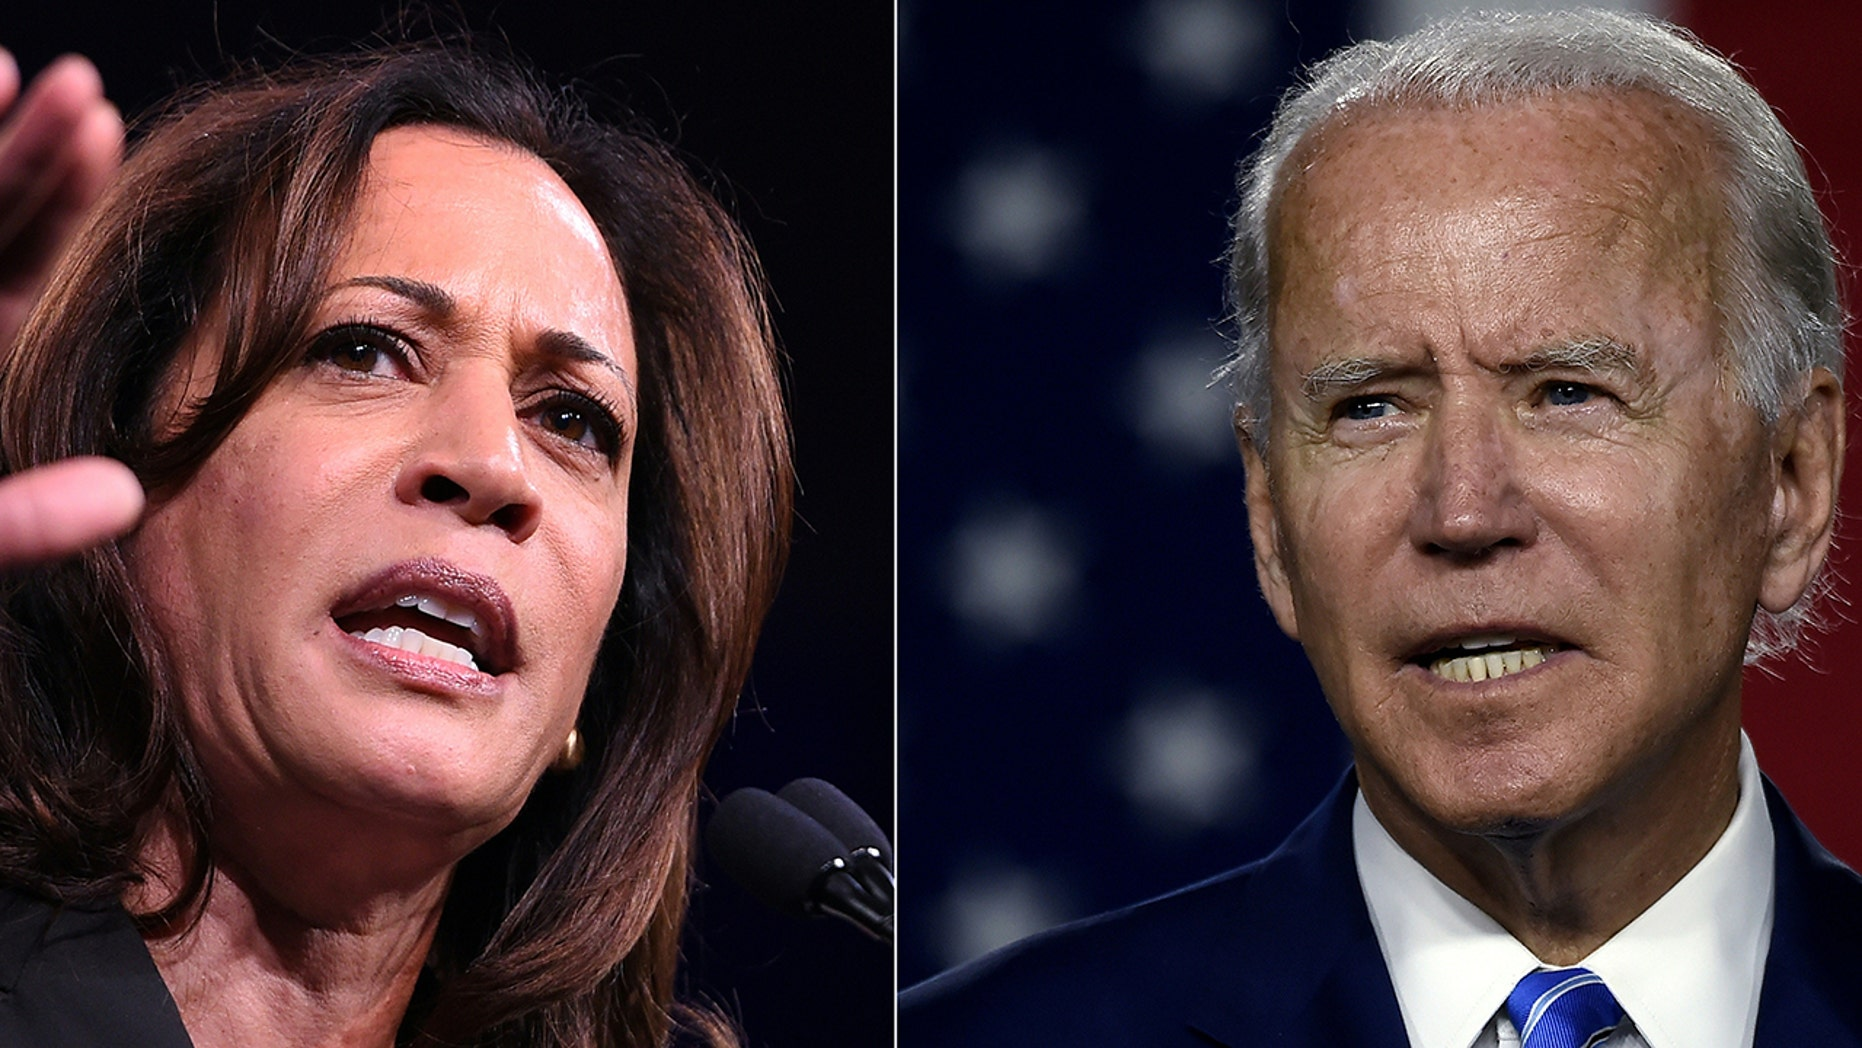 Biden's choice of Harris for ticket not universally embraced by party